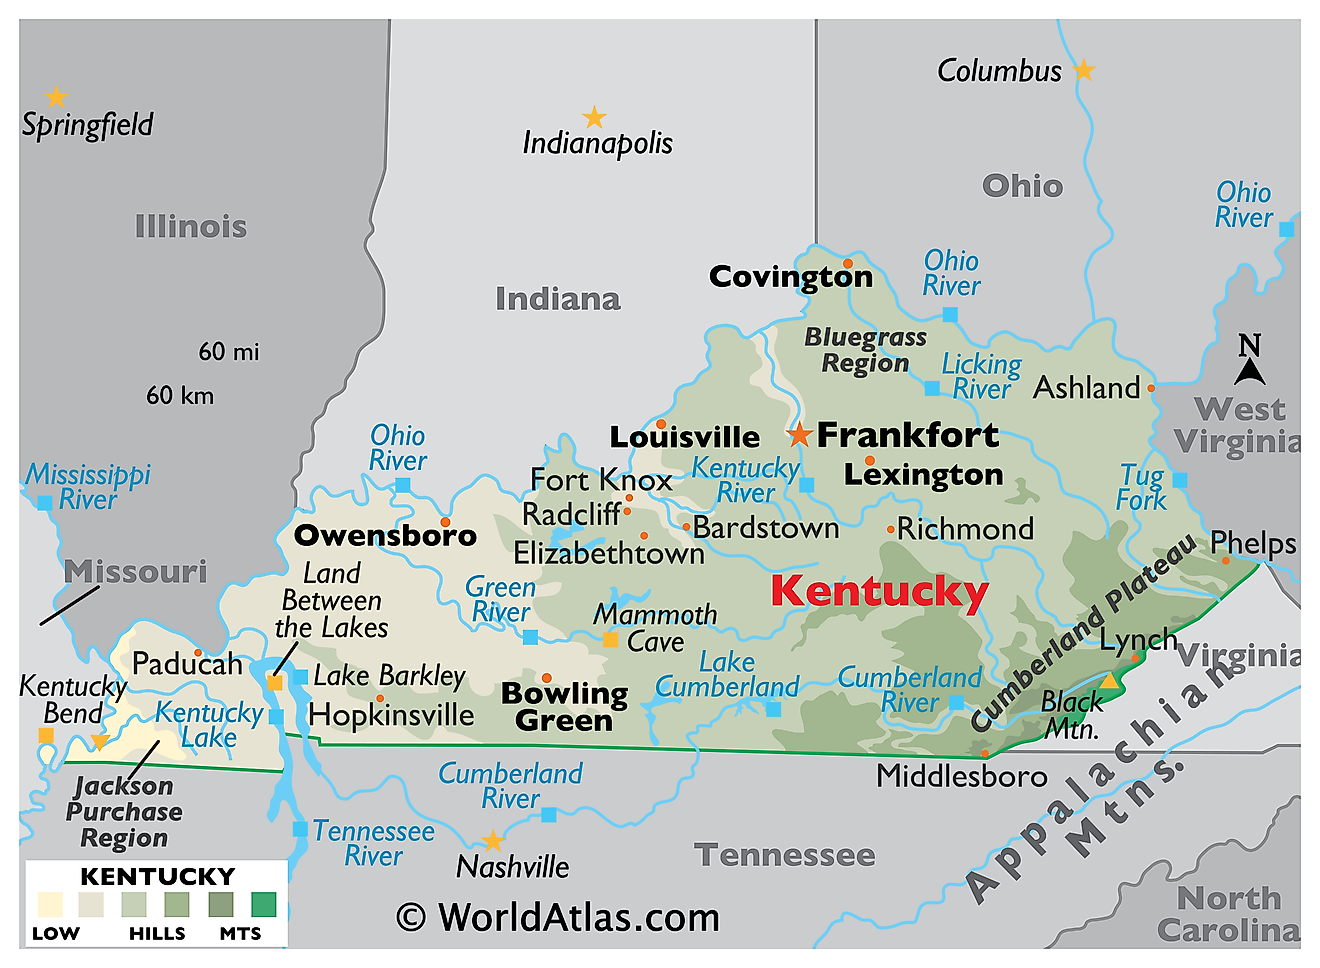 Physical Map of Kentucky. It shows the physical features of Kentucky including its mountain ranges, rivers and major lakes.